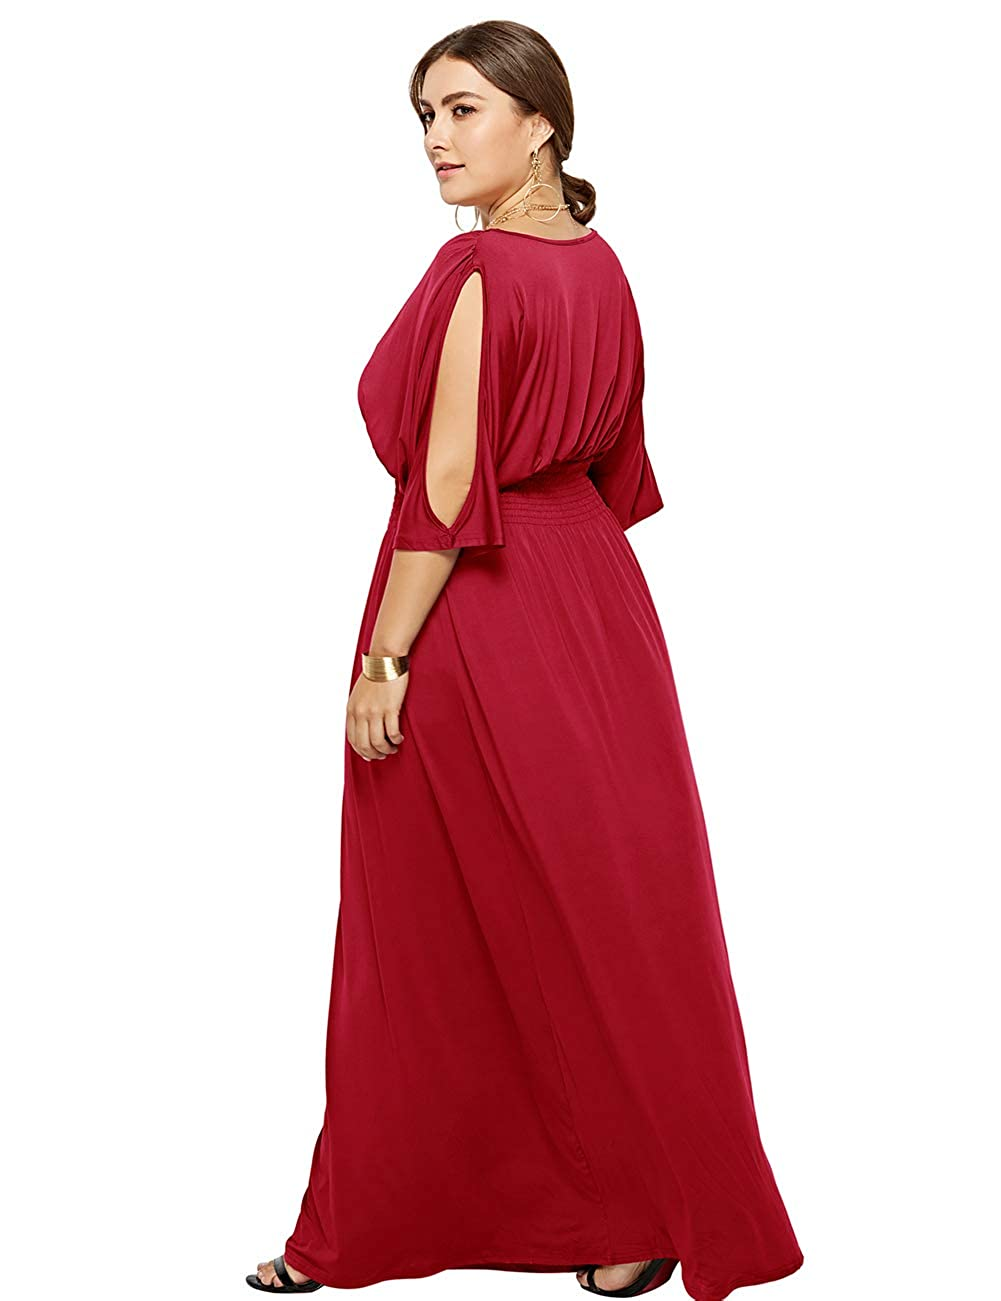 Airymap Plain Maxi Dress Off Sleeve Defined Waist Plus Size Evening Gowns for Ladies